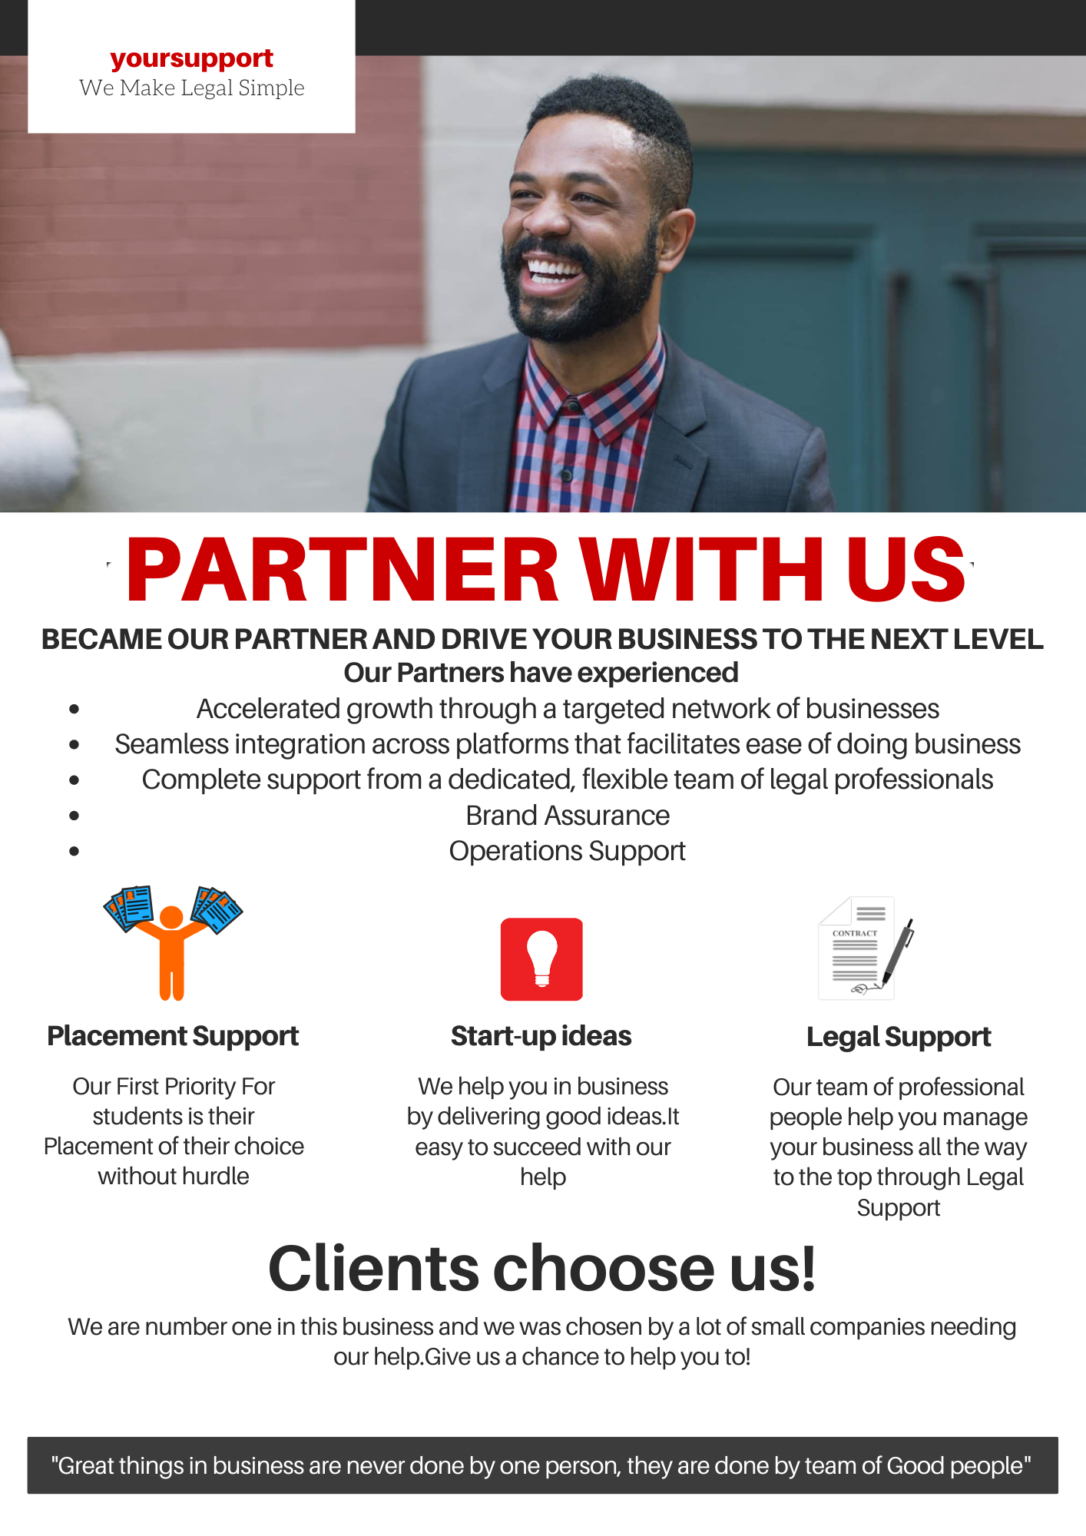 Consulting Services Flyer 2